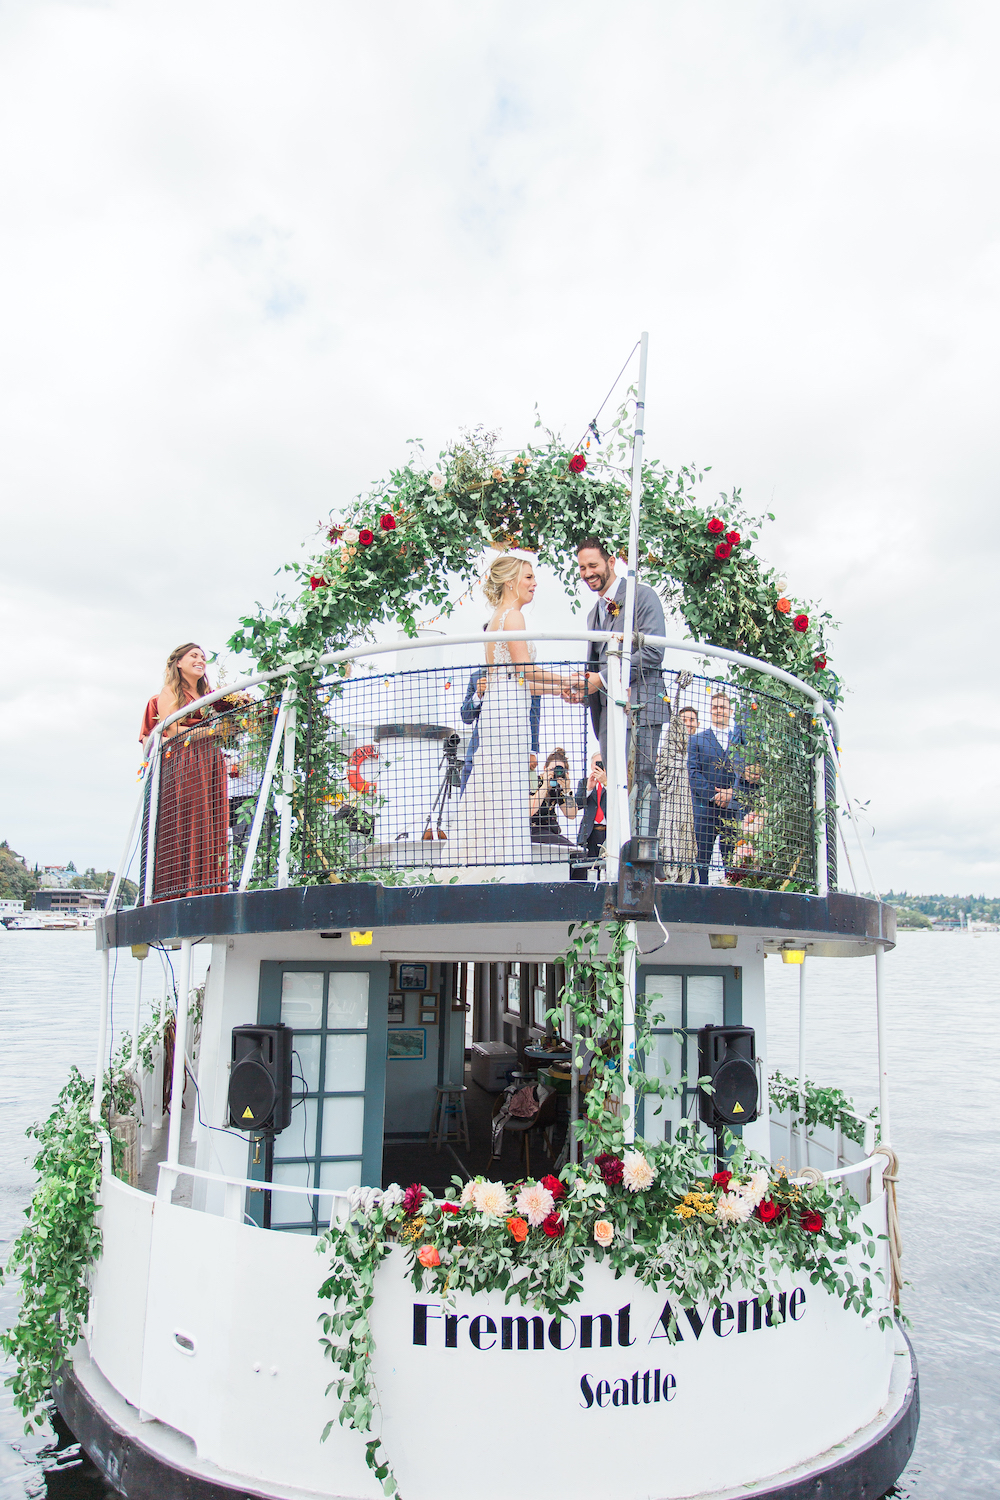 A fall wedding on Seattle's Lake Union with greenery arch and socially distanced guests - a safe pandemic wedding in Seattle